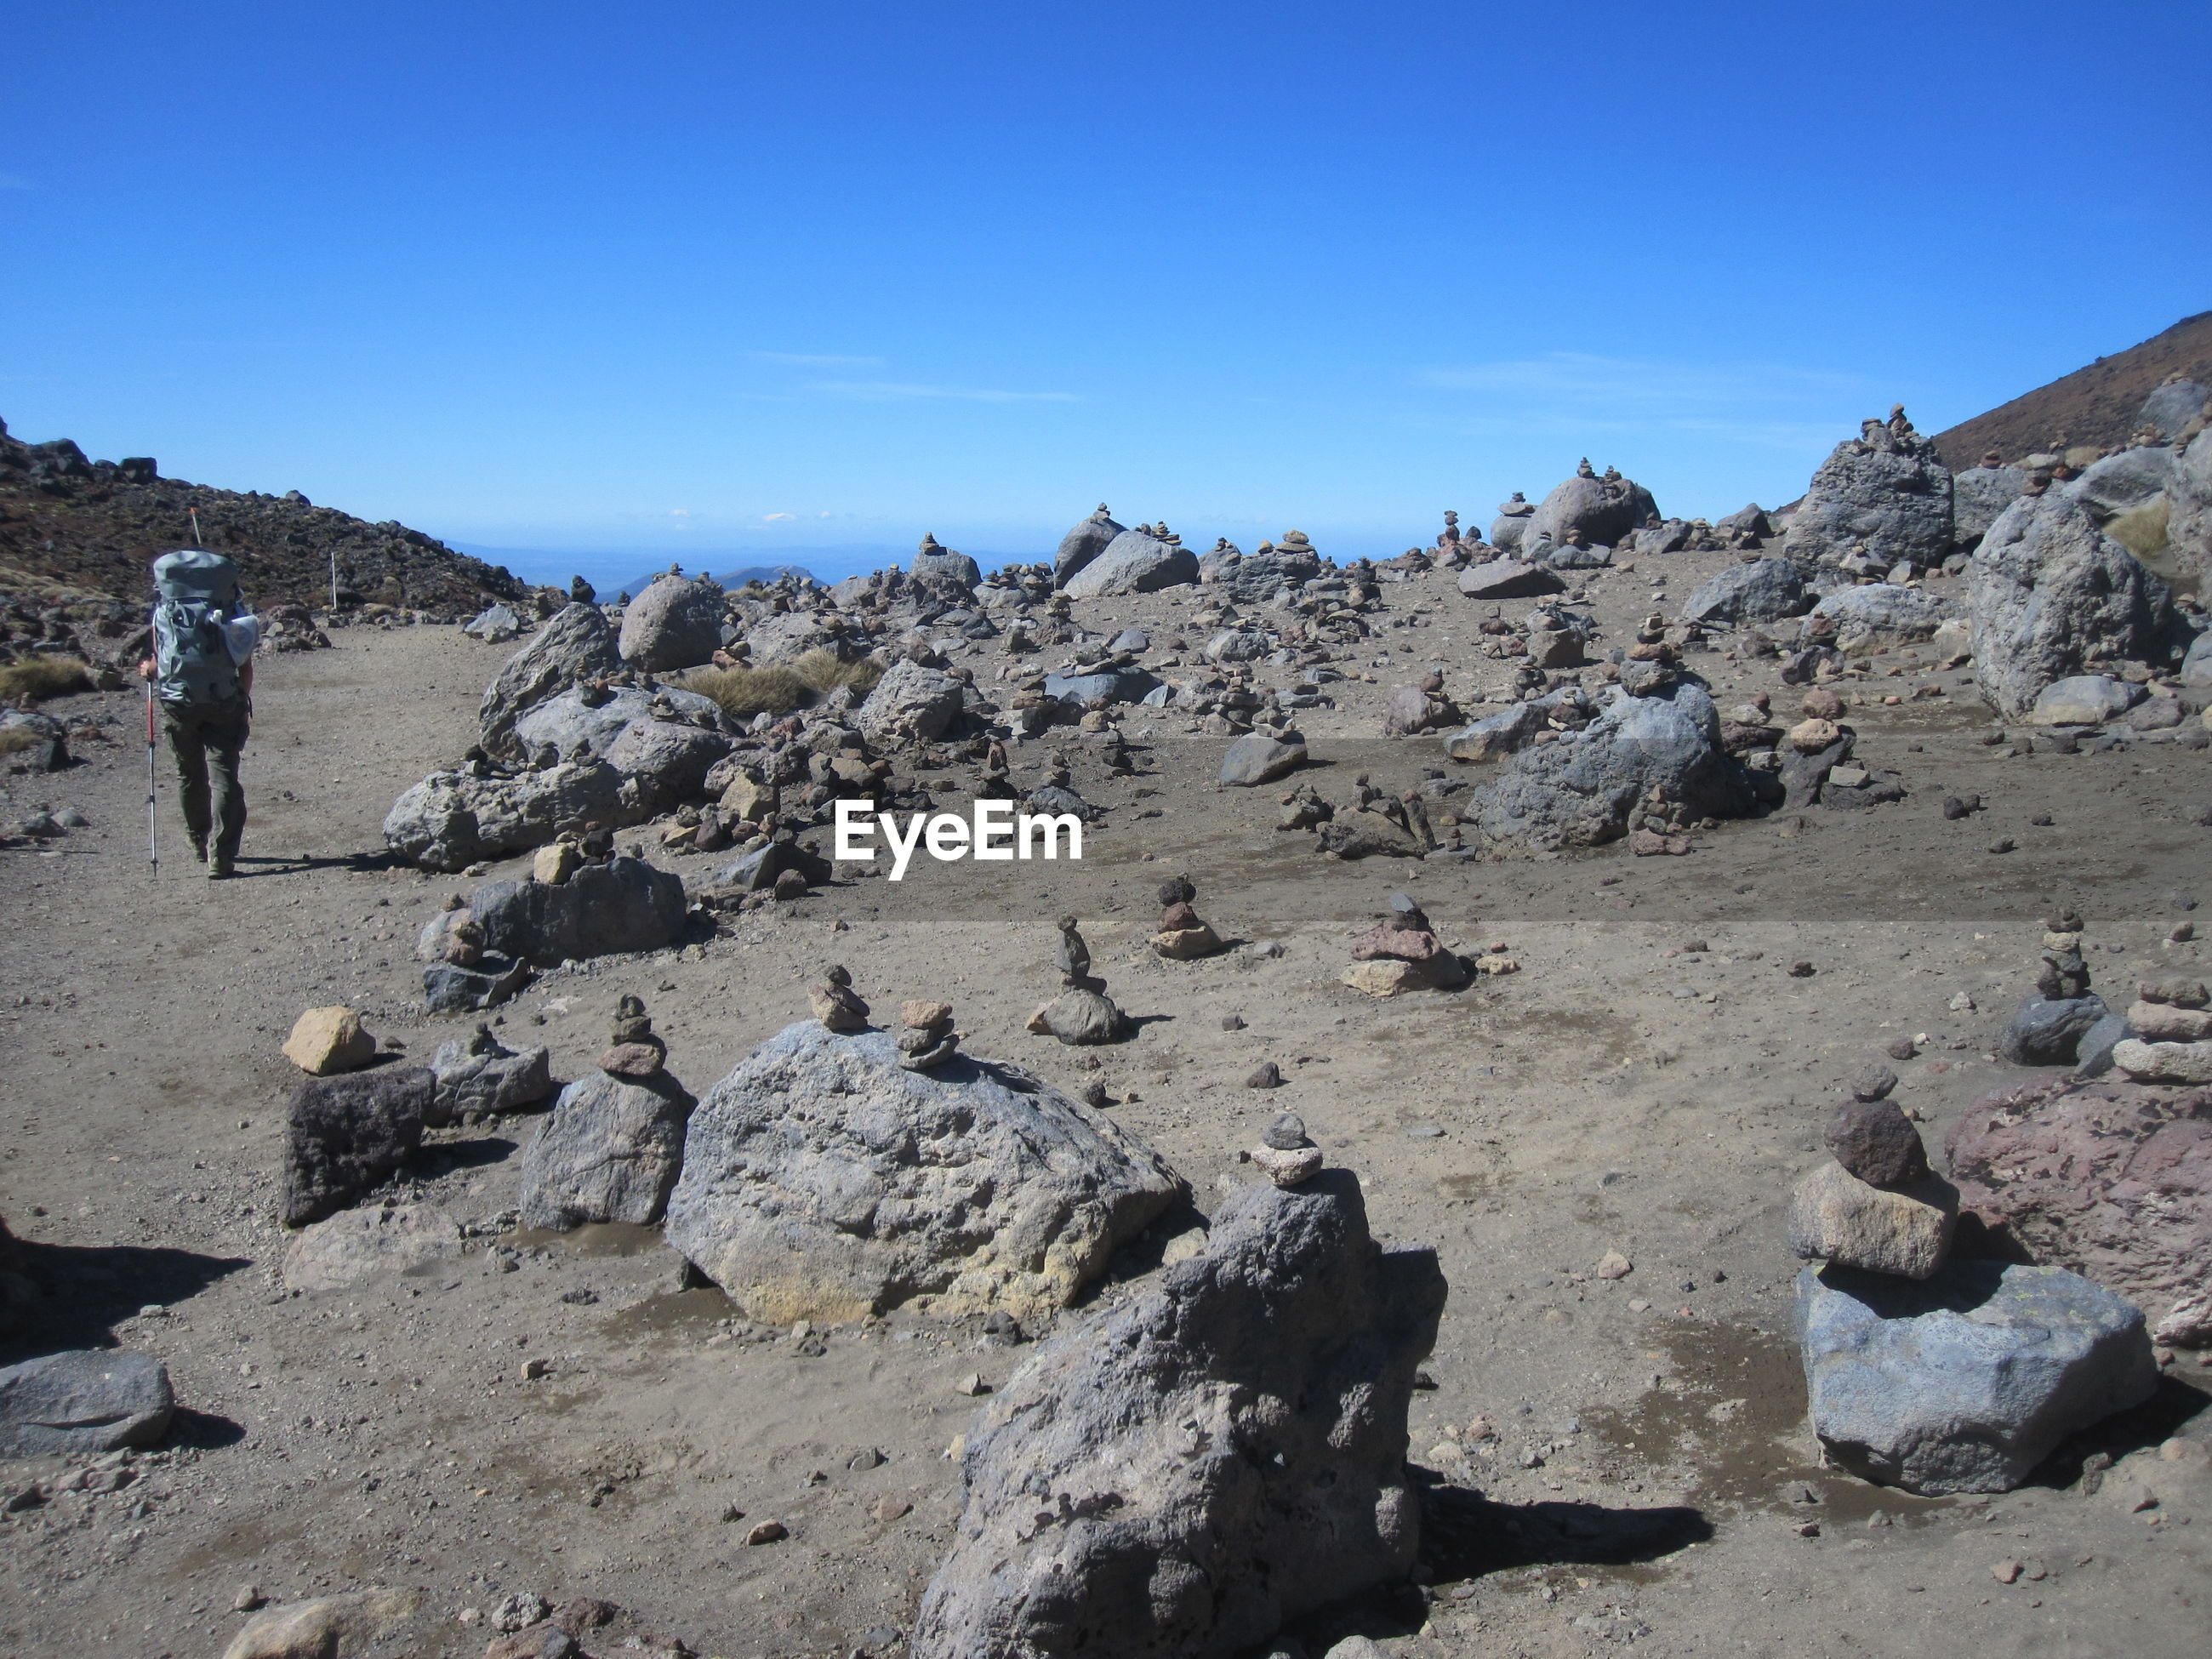 PANORAMIC VIEW OF ROCKS ON LAND AGAINST CLEAR SKY